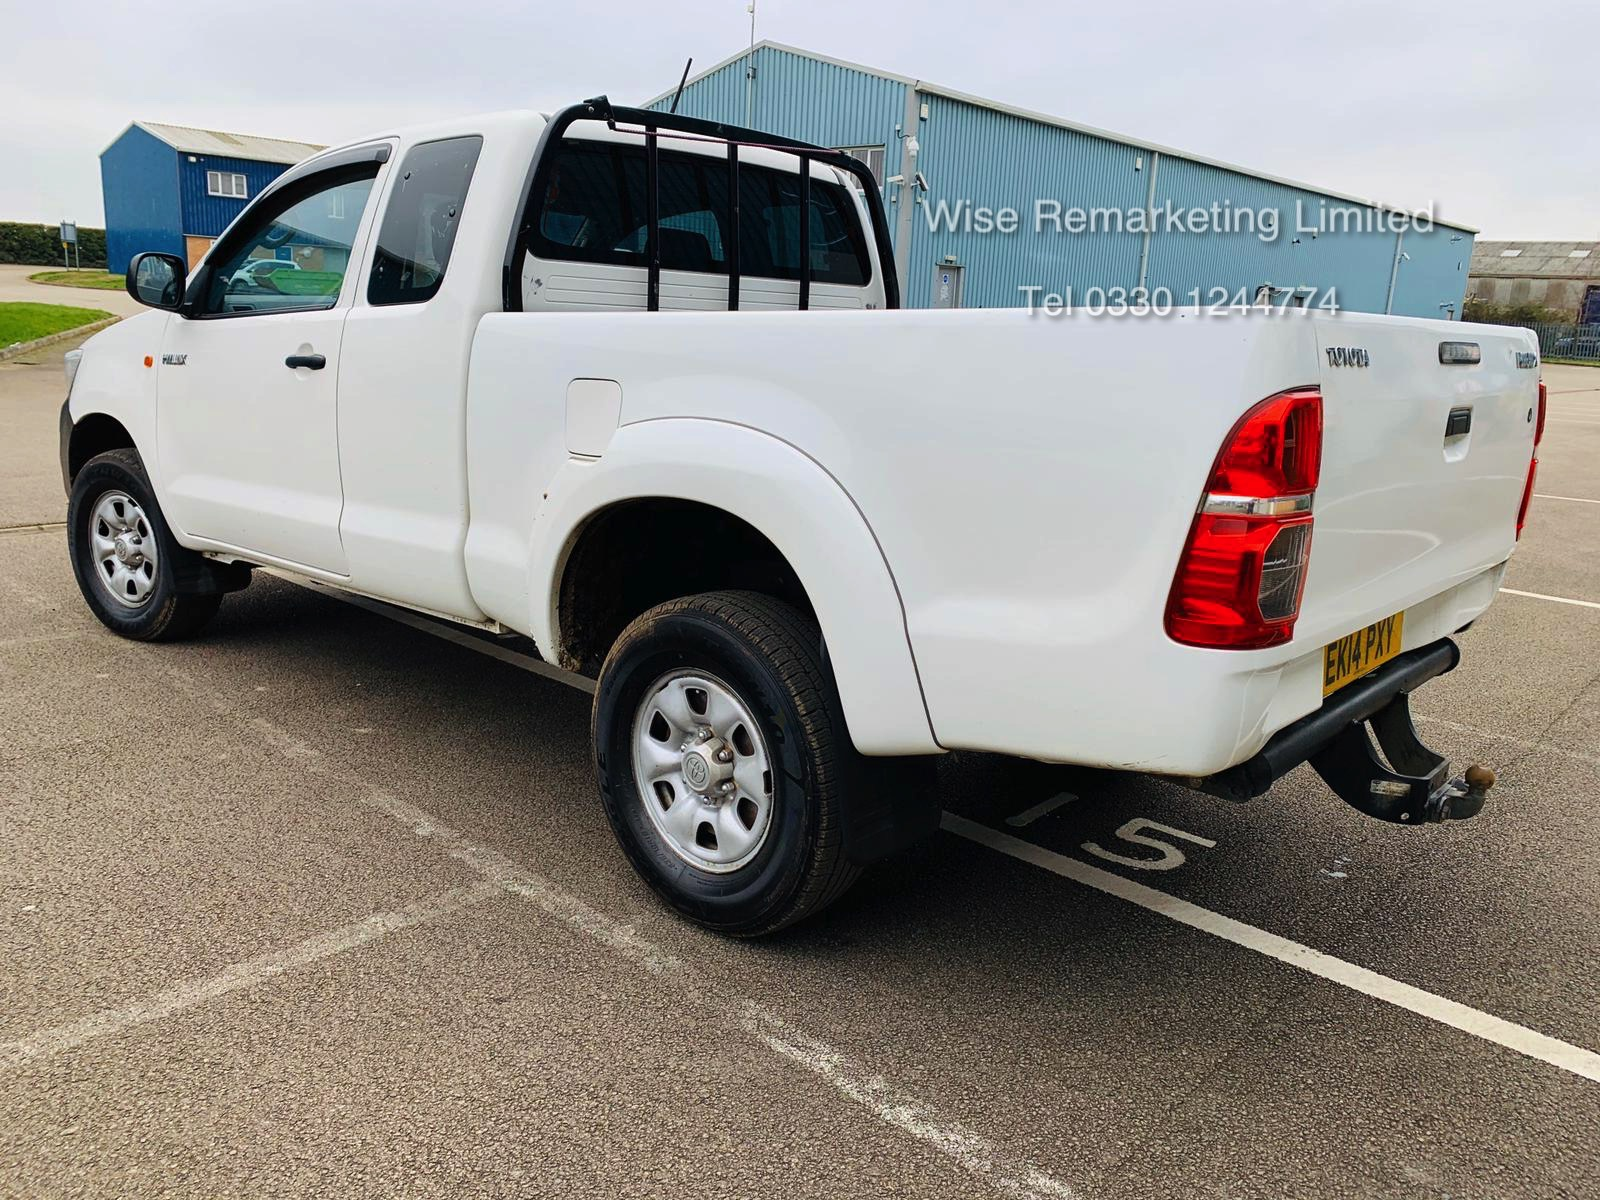 Reserve Met Toyota Hilux Active 2.5 D-4D 4X4 - 2014 14 Reg - Air Con - Tow Pack - SAVE 20% NO VAT - Image 6 of 17